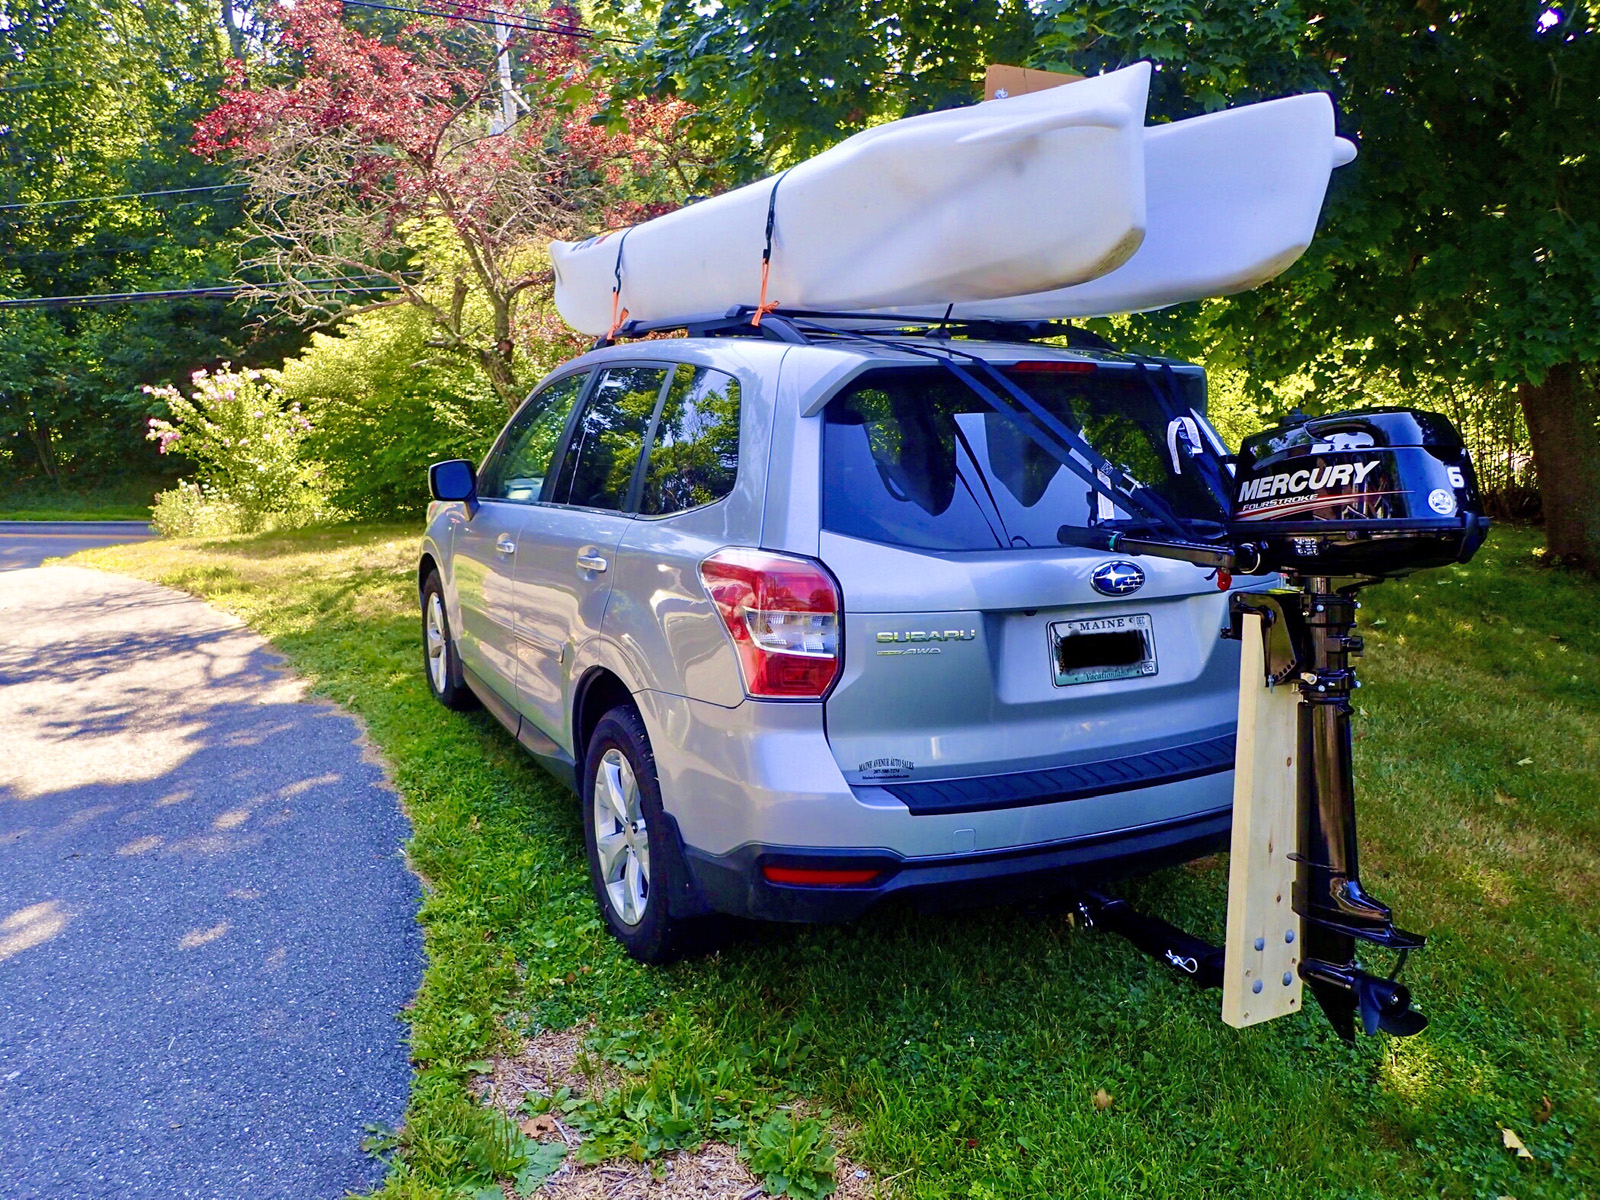 Wavewalk S4 skiff car topped on SUV - Maine